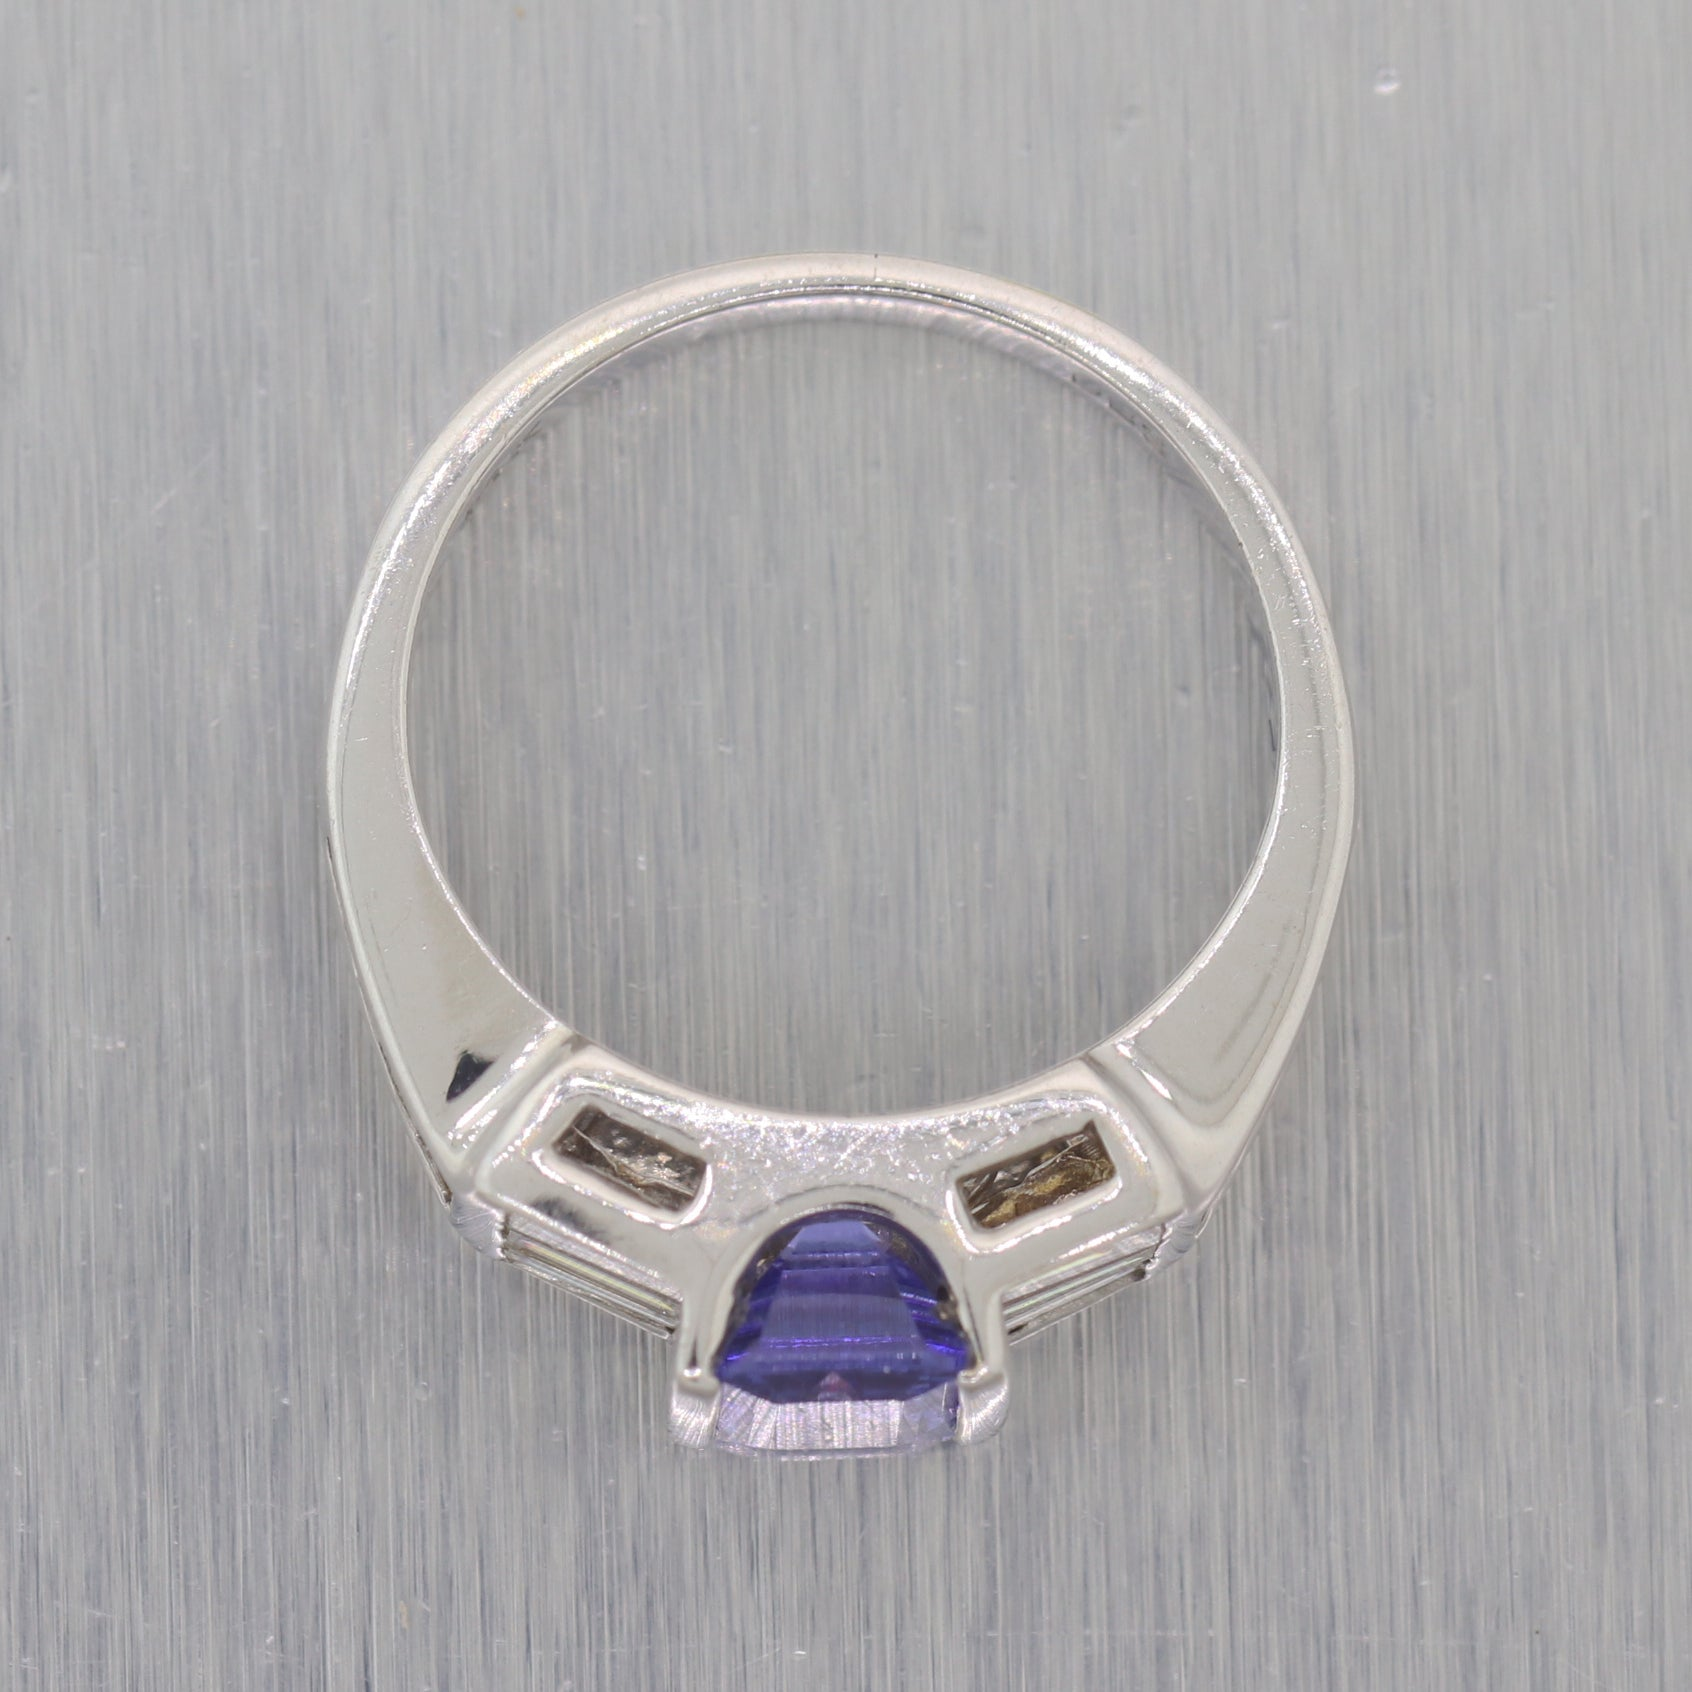 Vintage Estate 14k White Gold 1.75 Tanzanite & Diamond Ring